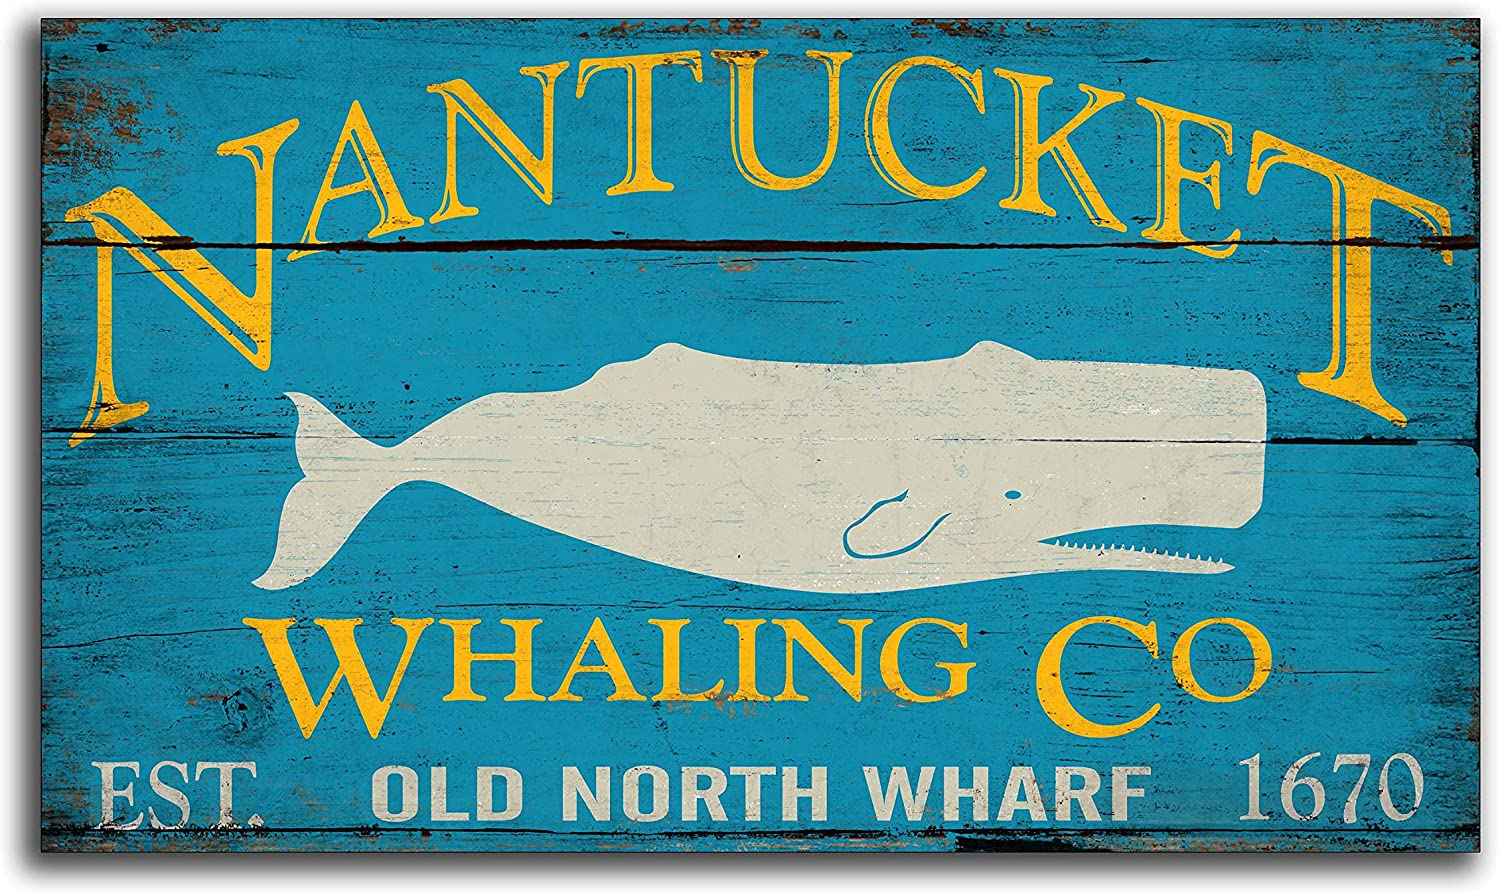 Adonis554Dan Nantucket Whaling Co Sperm Whale Moby Dick White Whale Wooden Nautical Folk Art Sign Decor Sign Wall Decor Store Cottage Signs